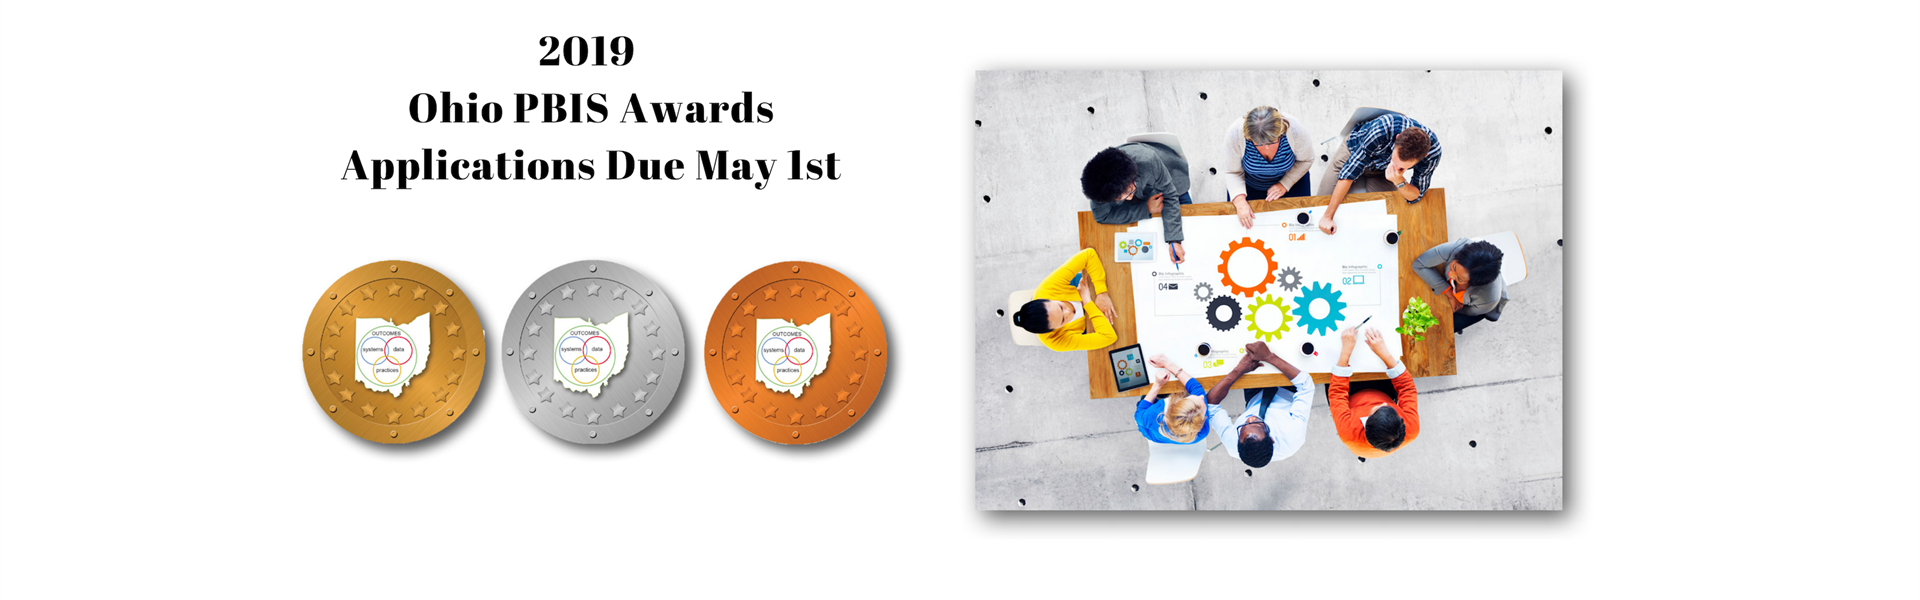 PBIS Awards Applications Due May 1